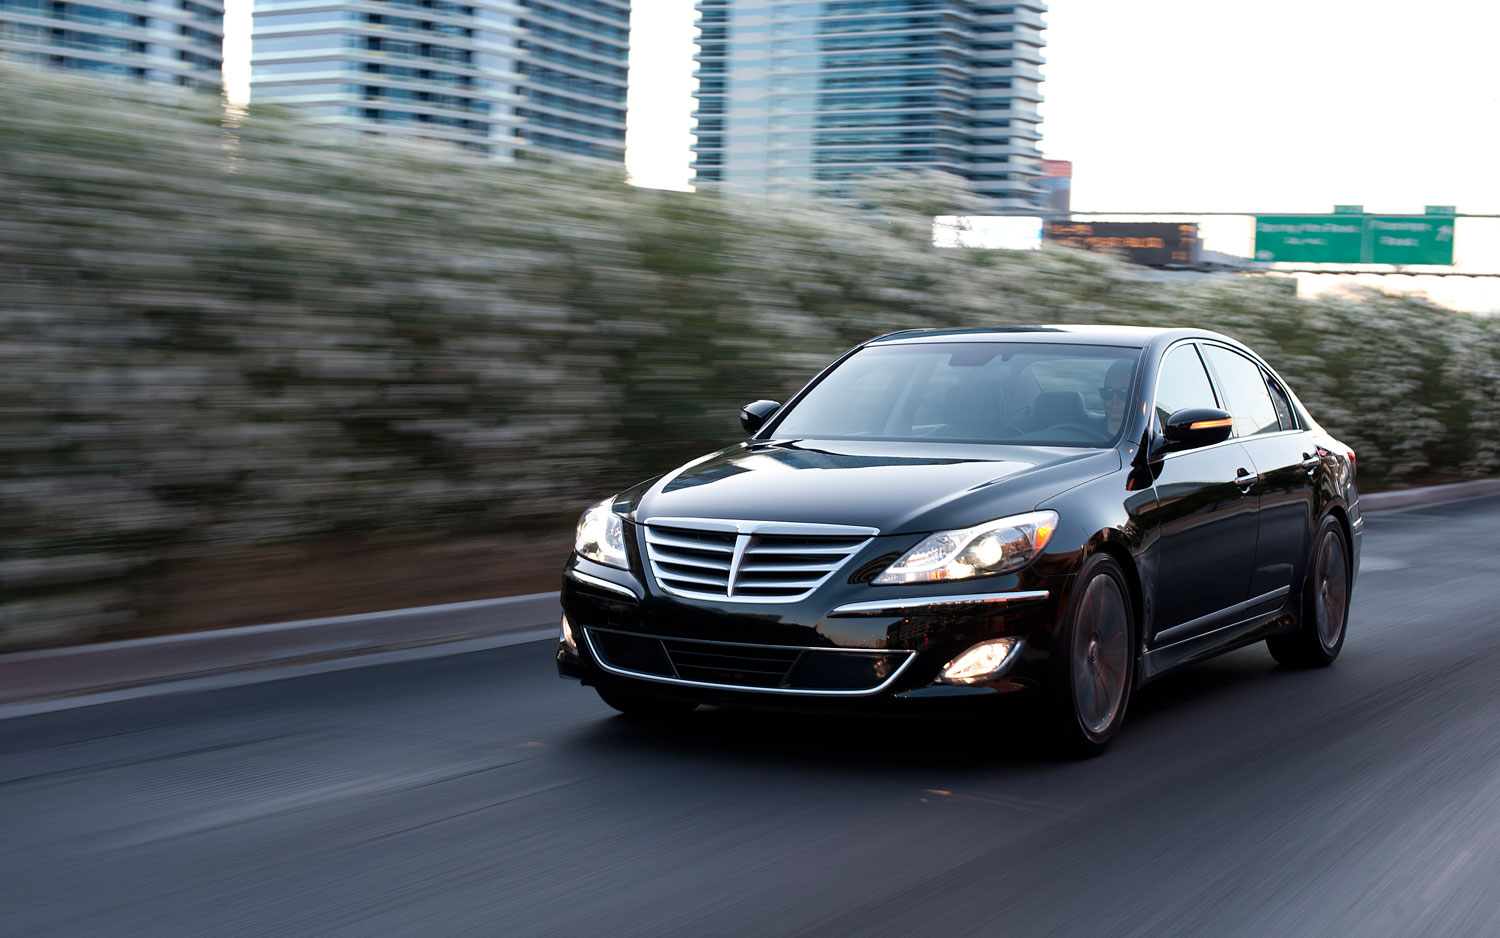 2012 Hyundai Genesis Sedan 5 0 R Spec First Drive